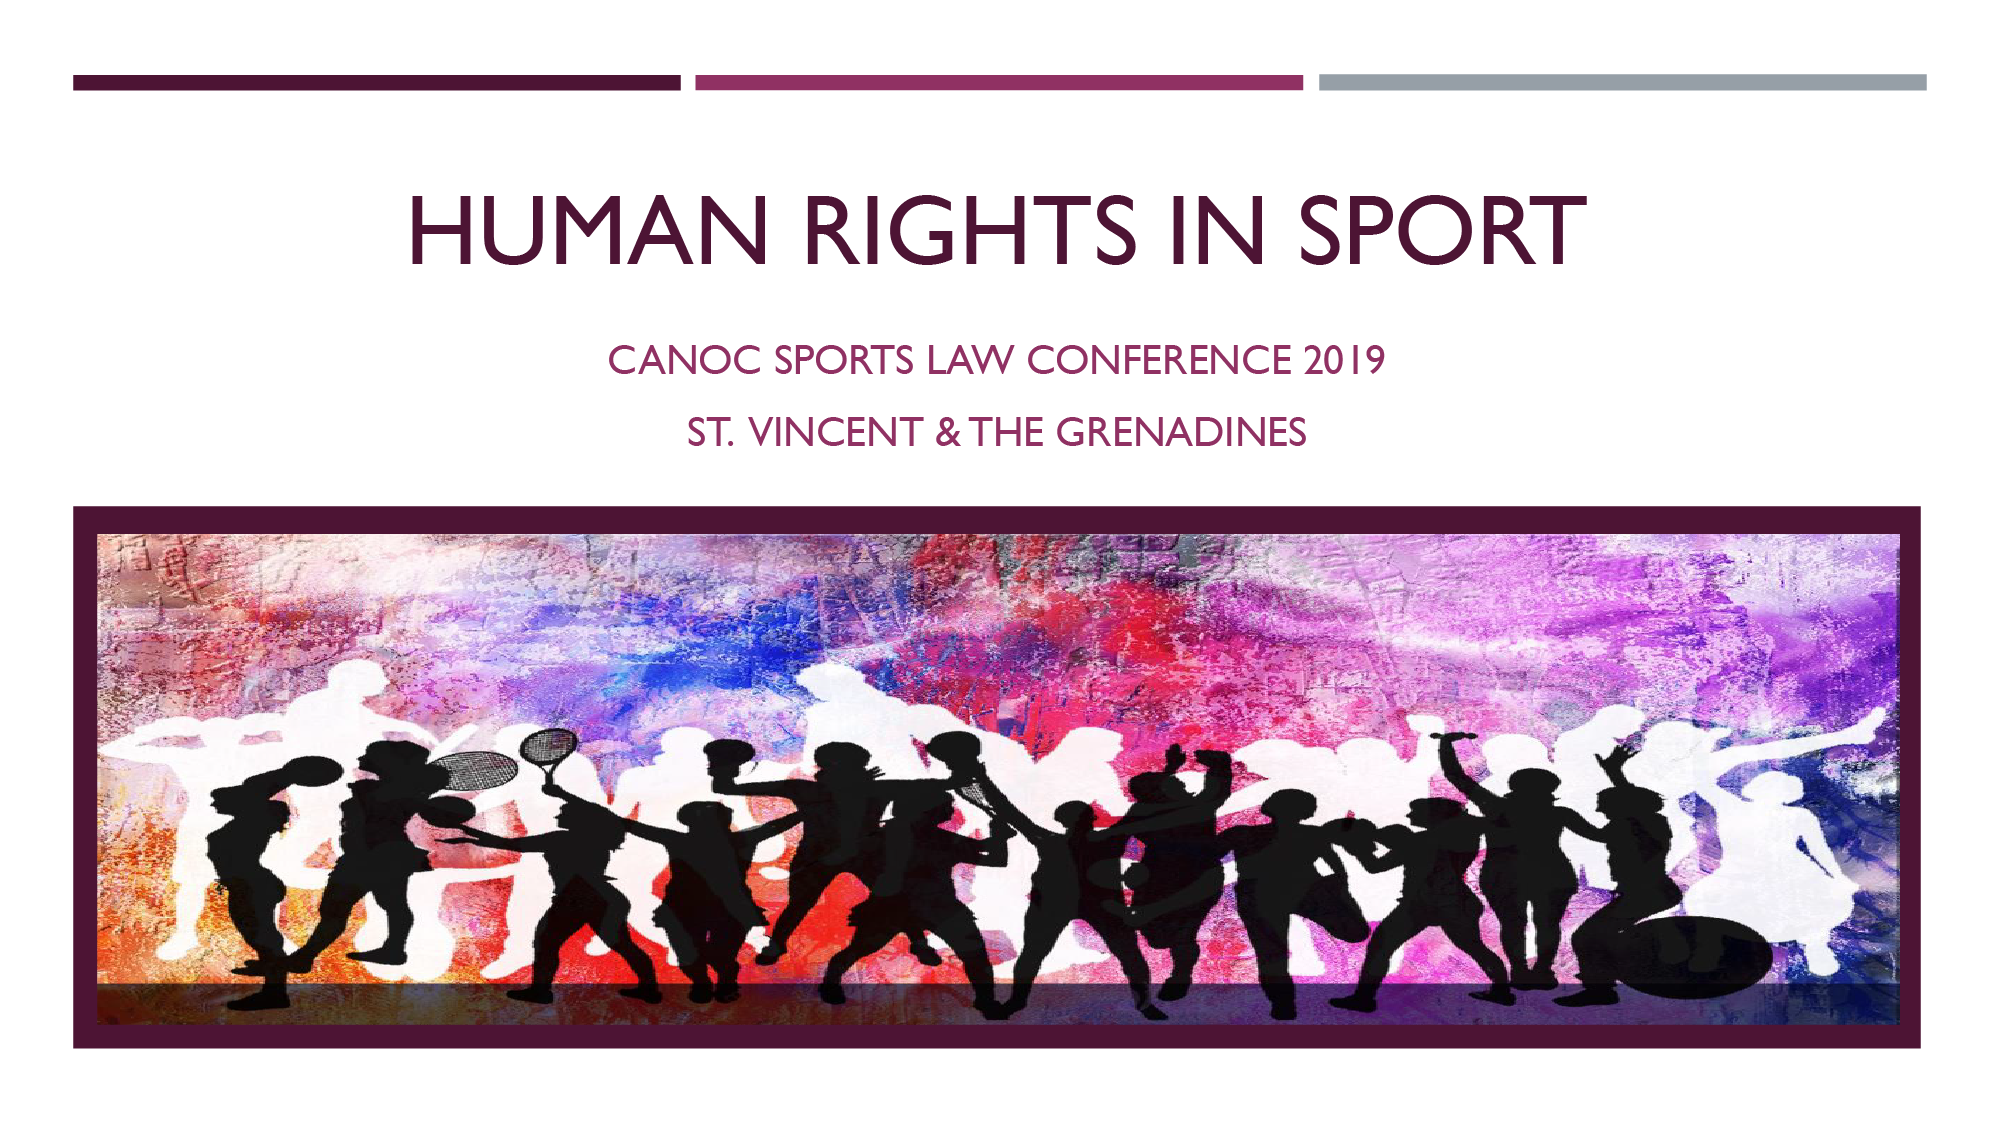 HUMAN RIGHTS IN SPORT